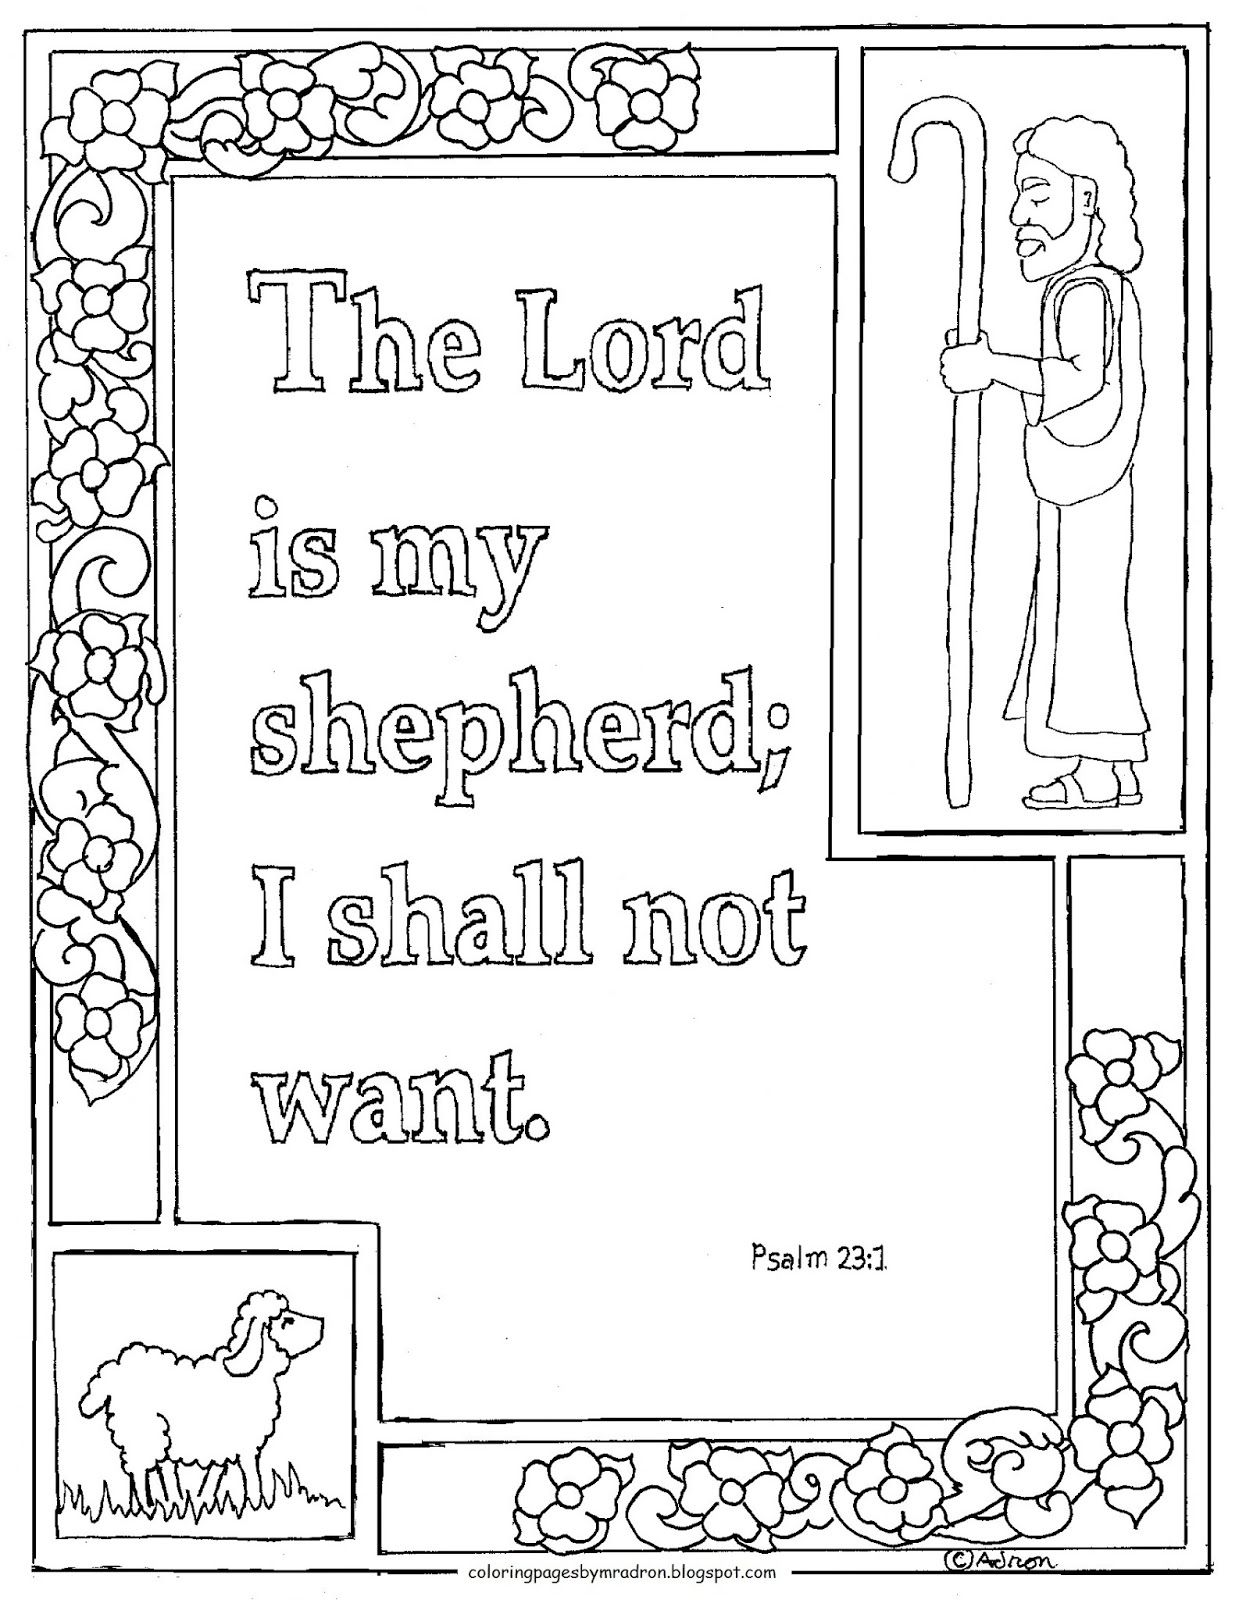 Printable Psalm 23 1 The Lord Is My Shepherd Coloring Page